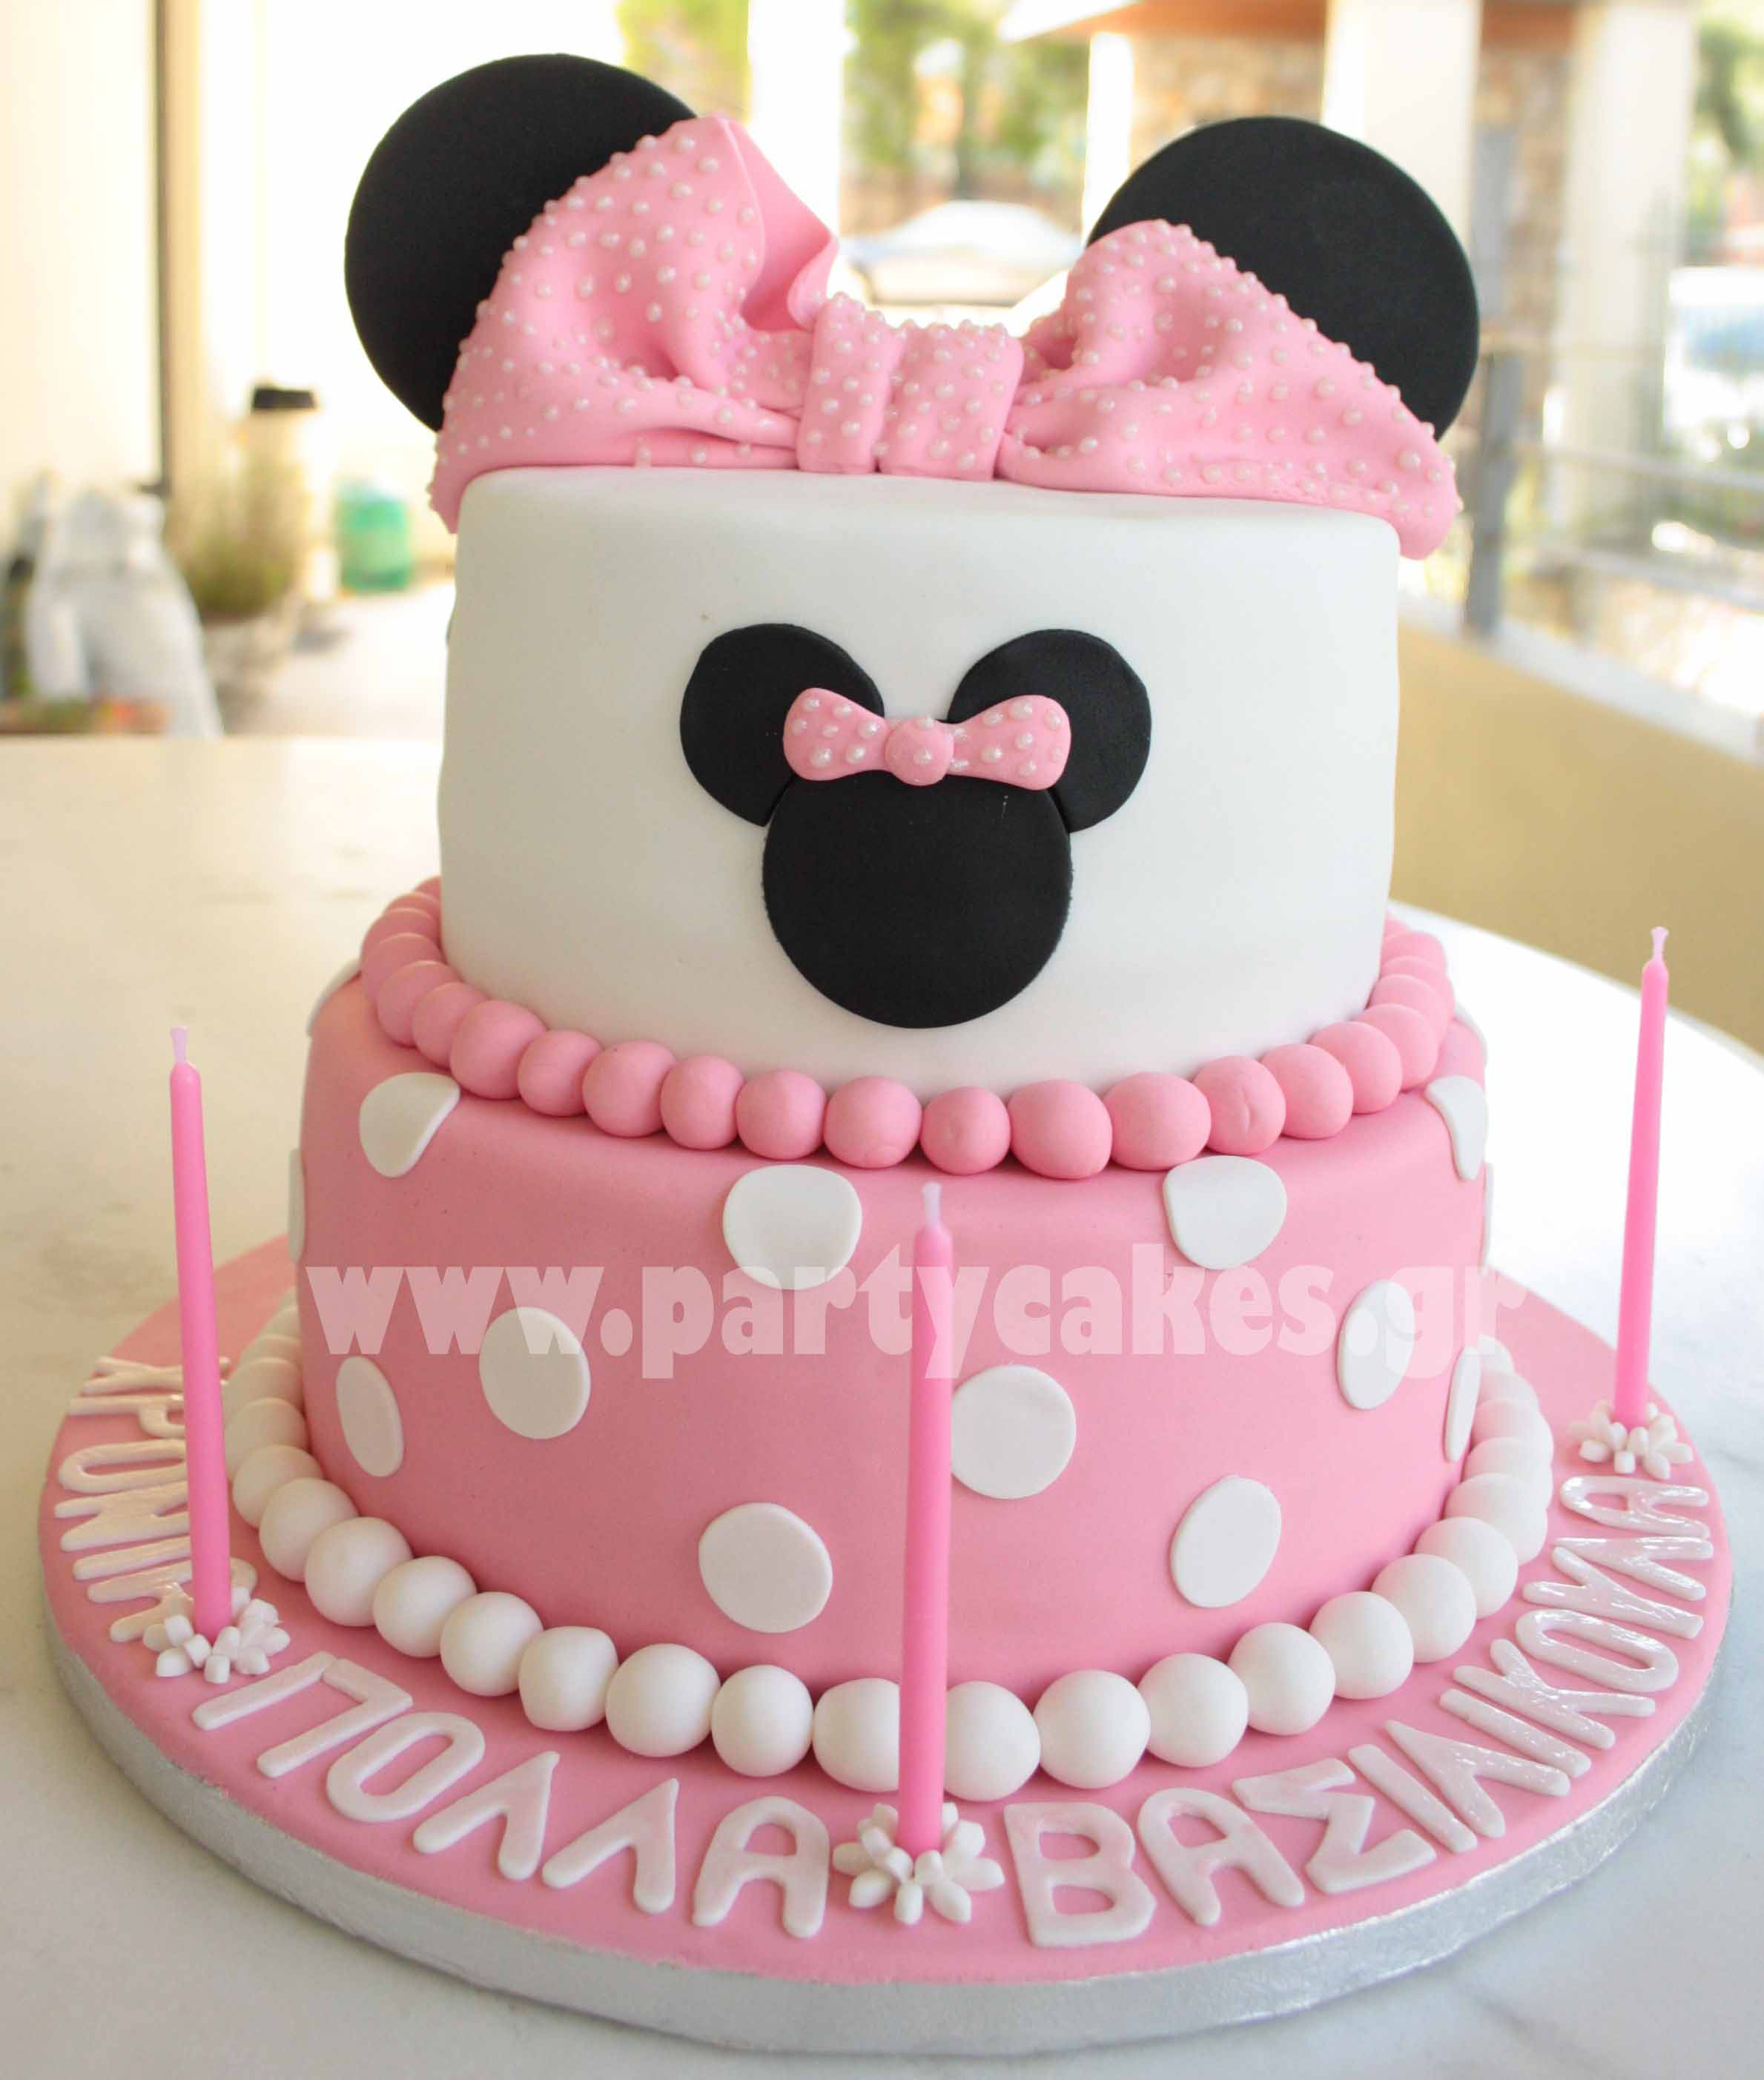 Minnie+Mouse+Cake+1+copy.jpg